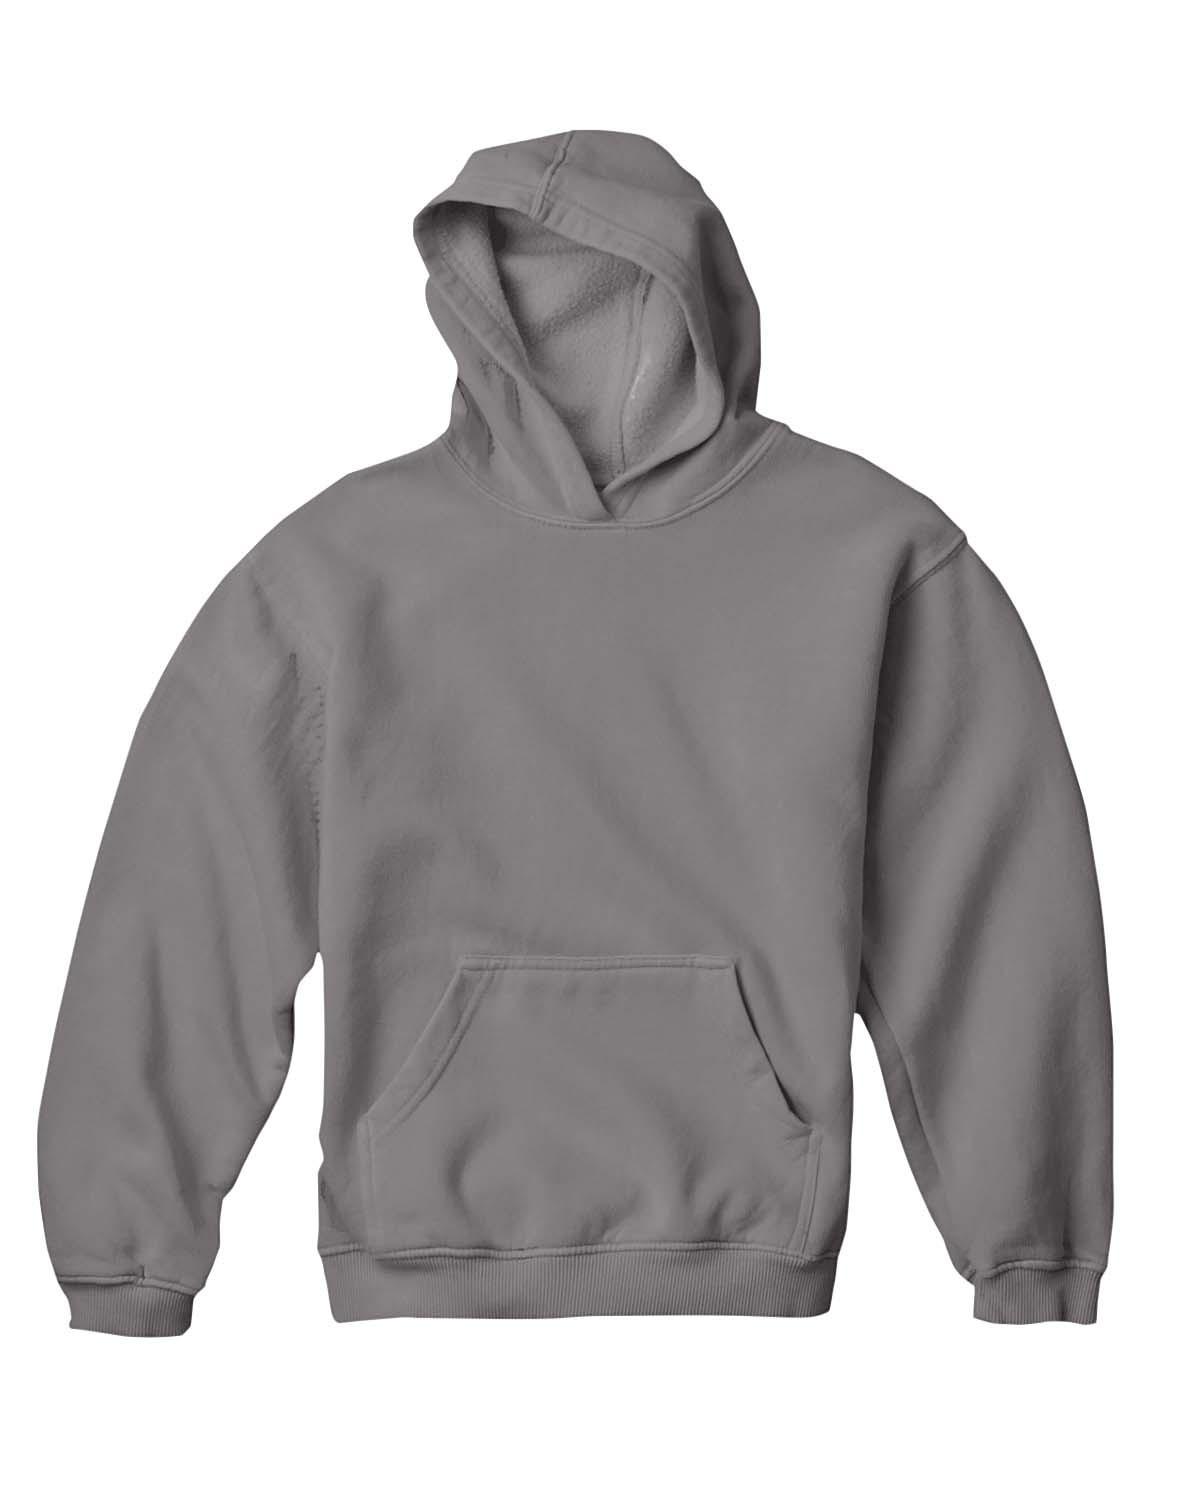 C8755 Comfort Colors Drop Ship GREY